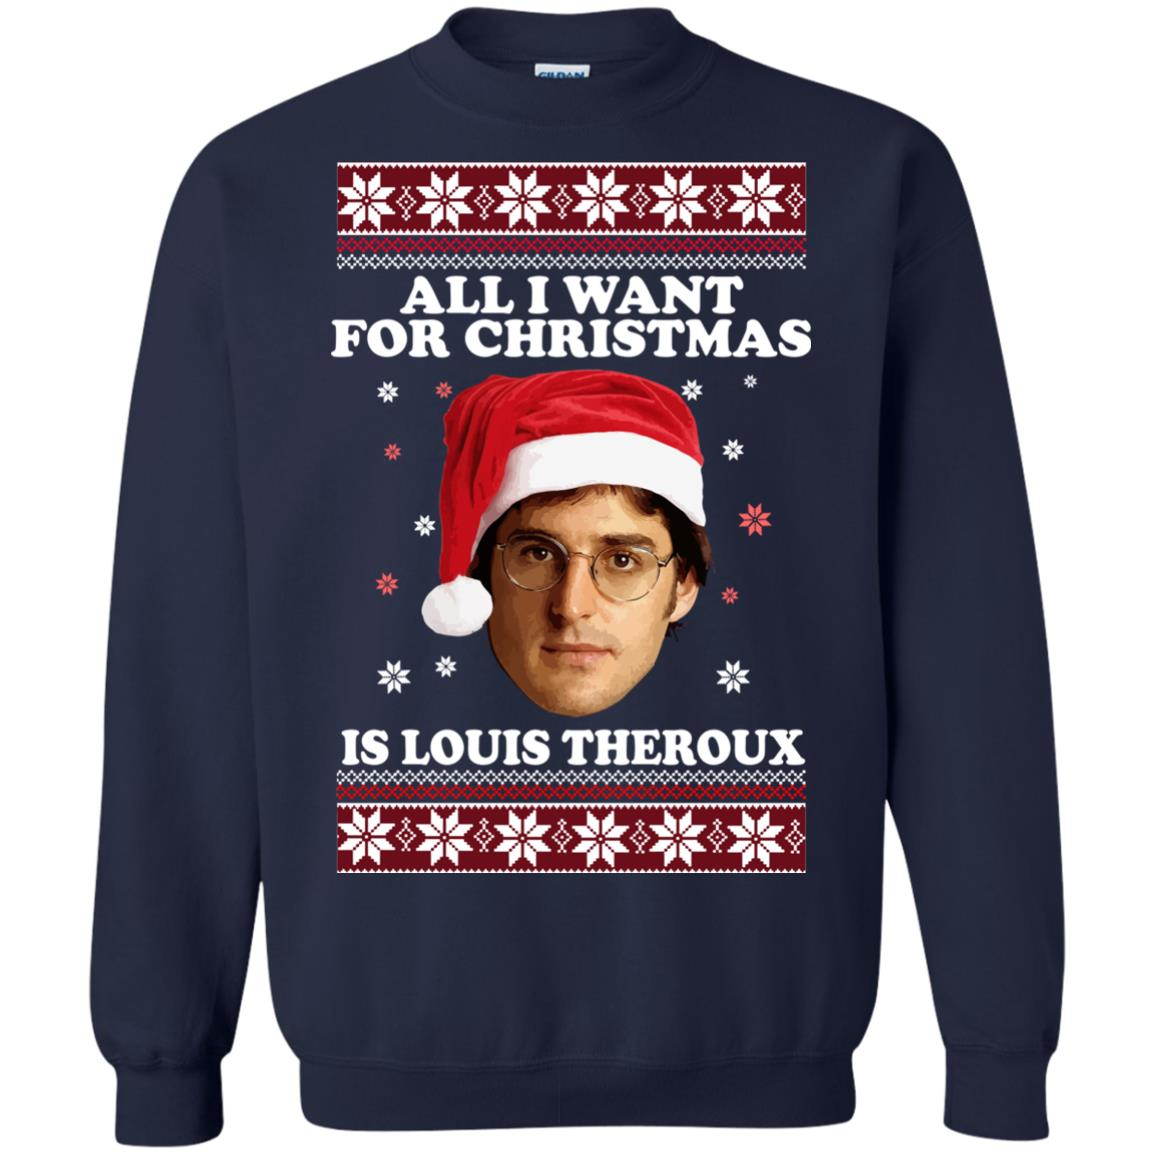 image 851 - All I Want For Christmas Is Louis Theroux Sweater, Shirt